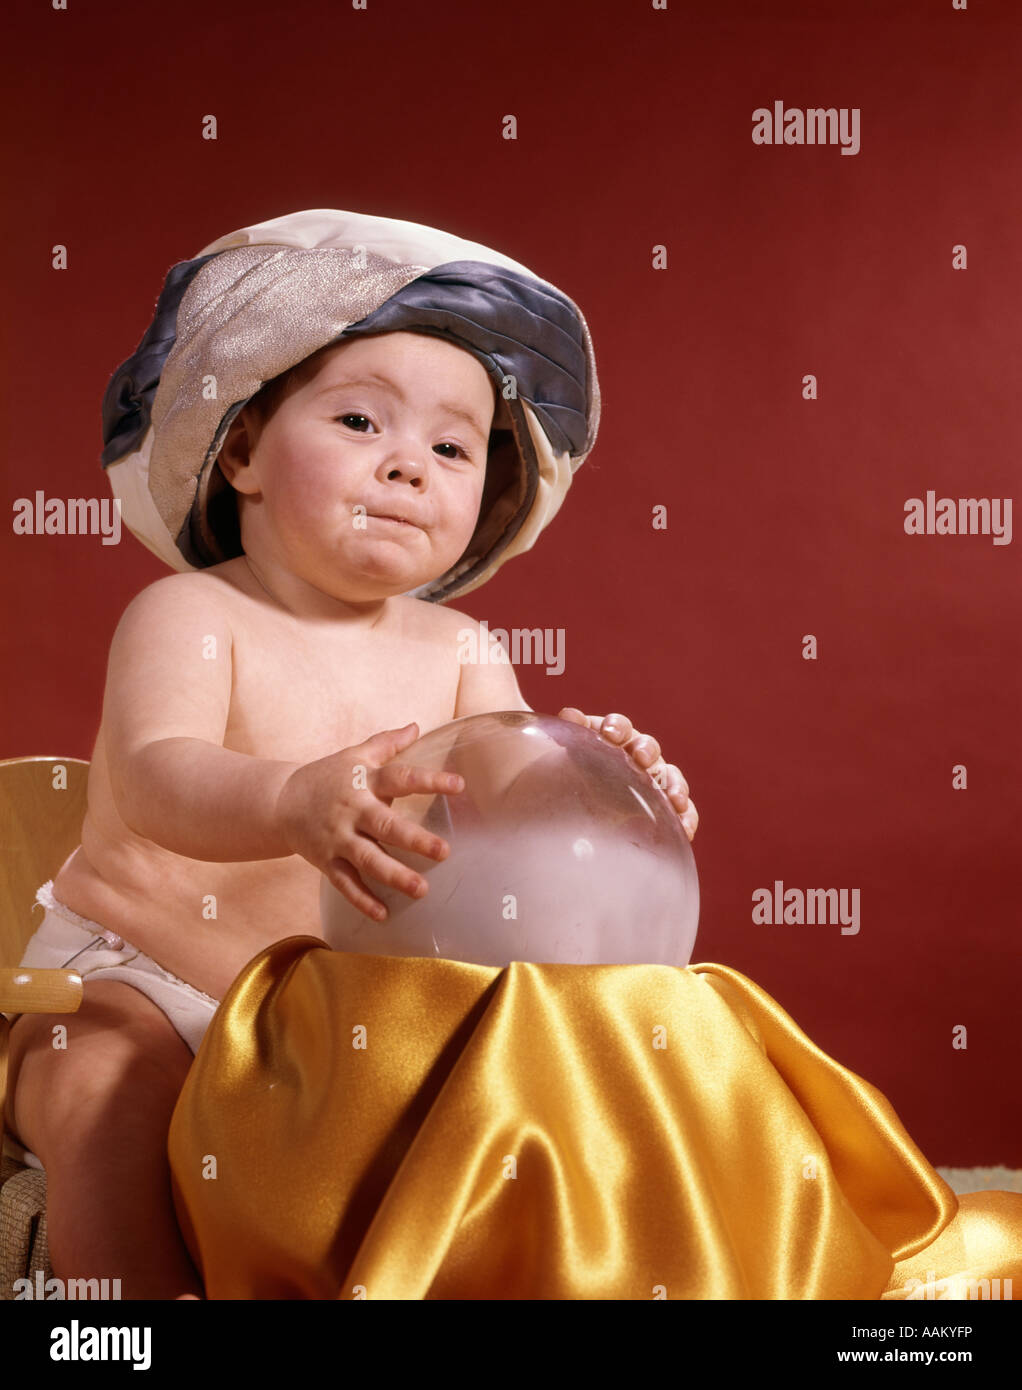 Baby Teller Baby With Fortune Teller Turban Headdress Holding Hands On